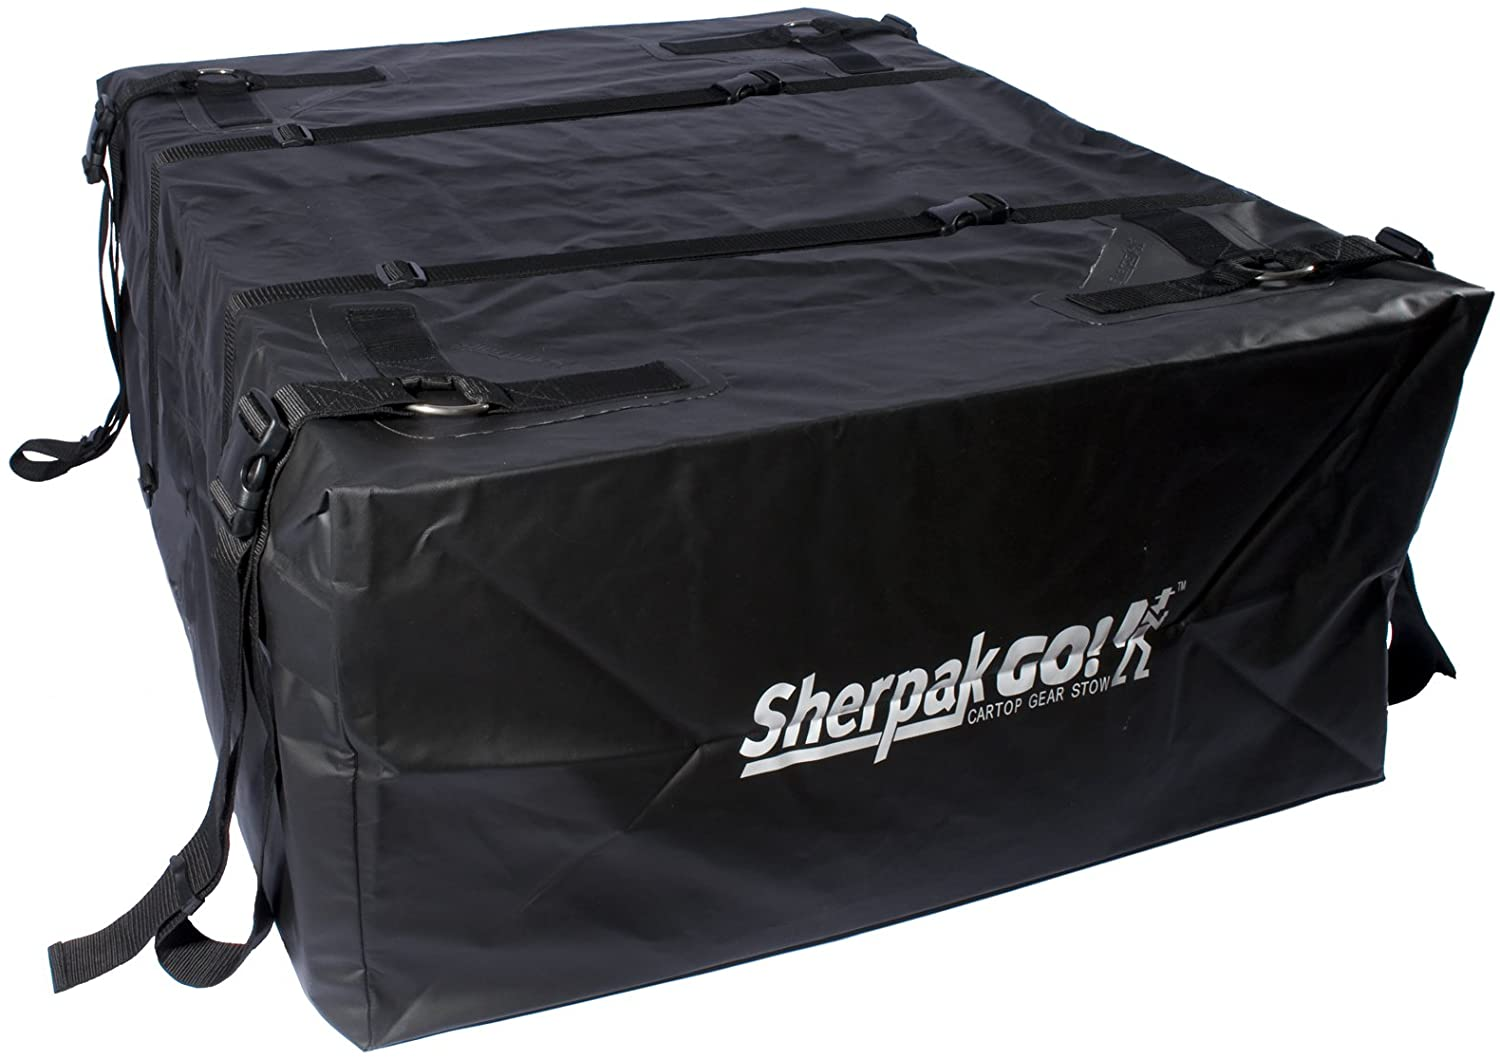 Seattle Sports Sherpak Go! Cargo Bag Carrier